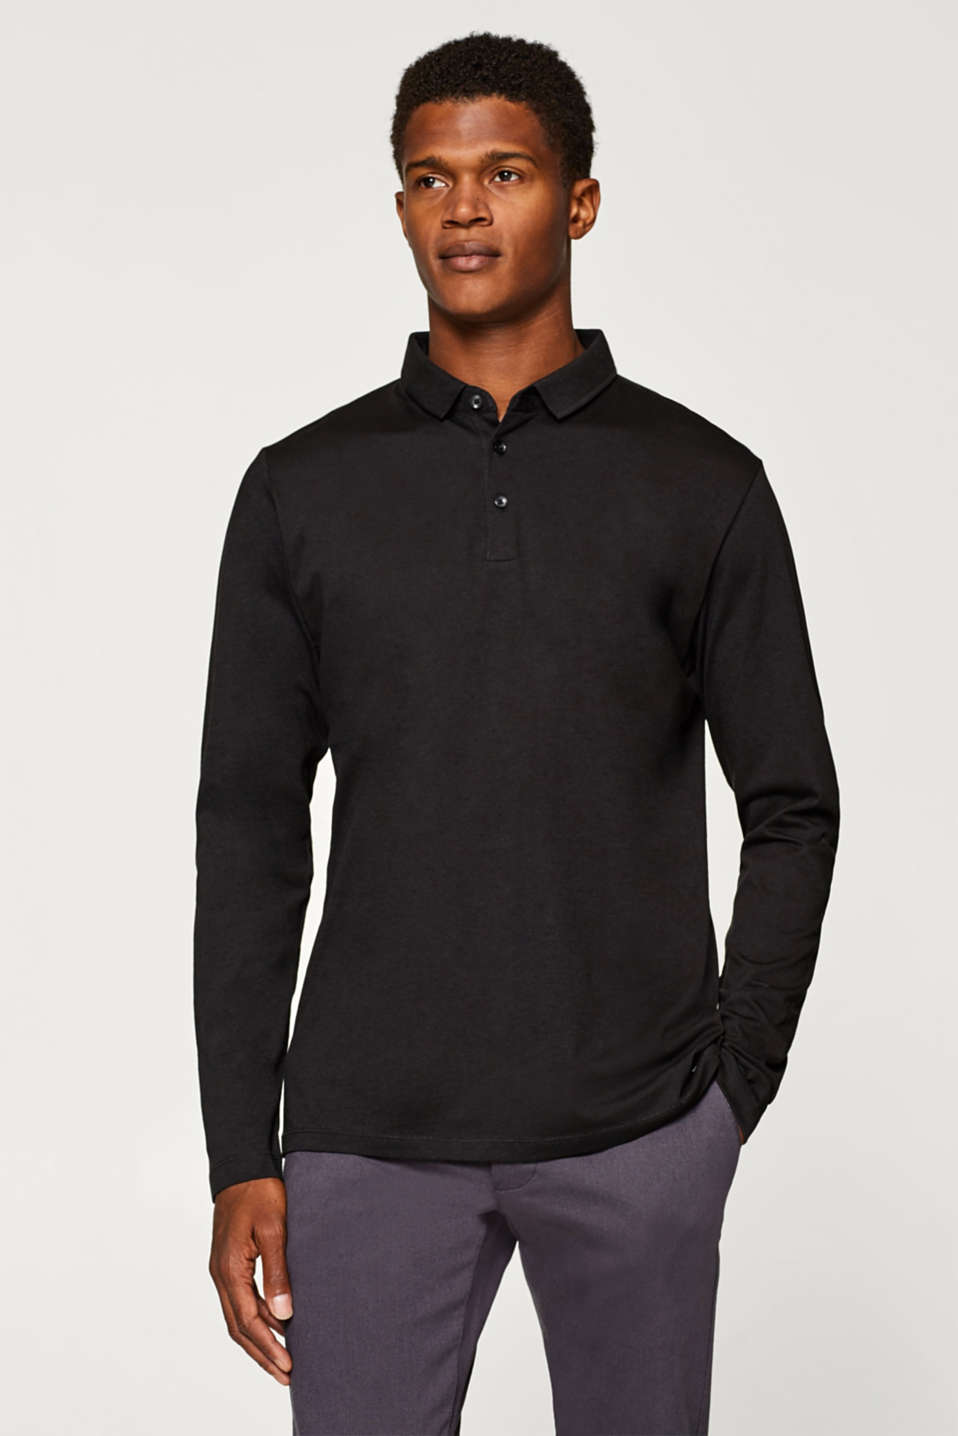 Esprit - Fitted polo shirt in 100% cotton